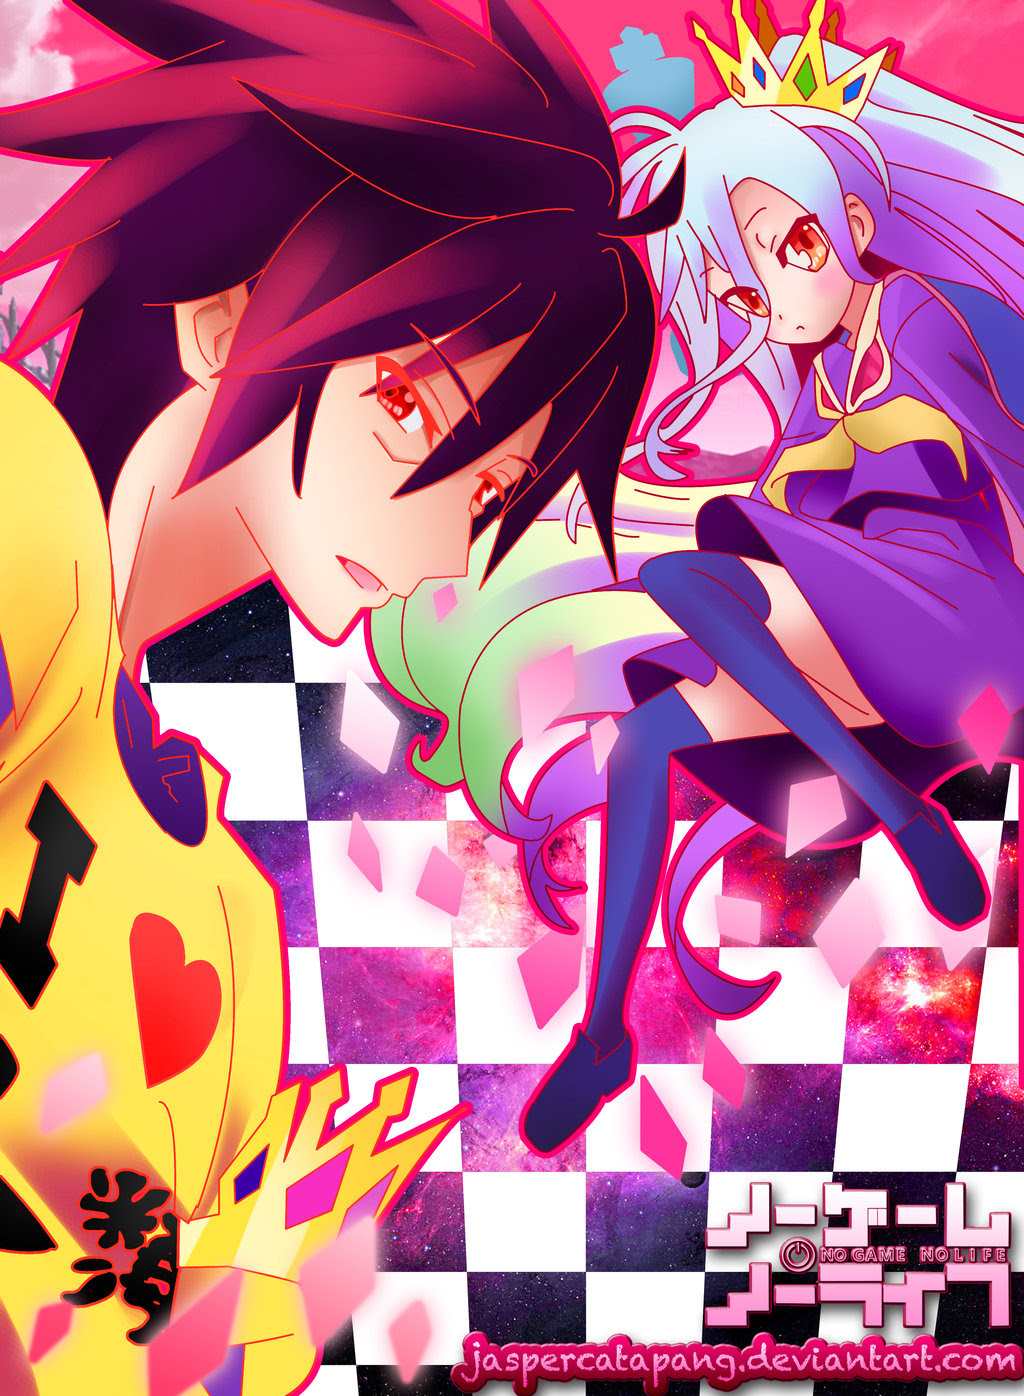 No Game No Life Hd Wallpapers Backgrounds Wallpaper 1024x1396